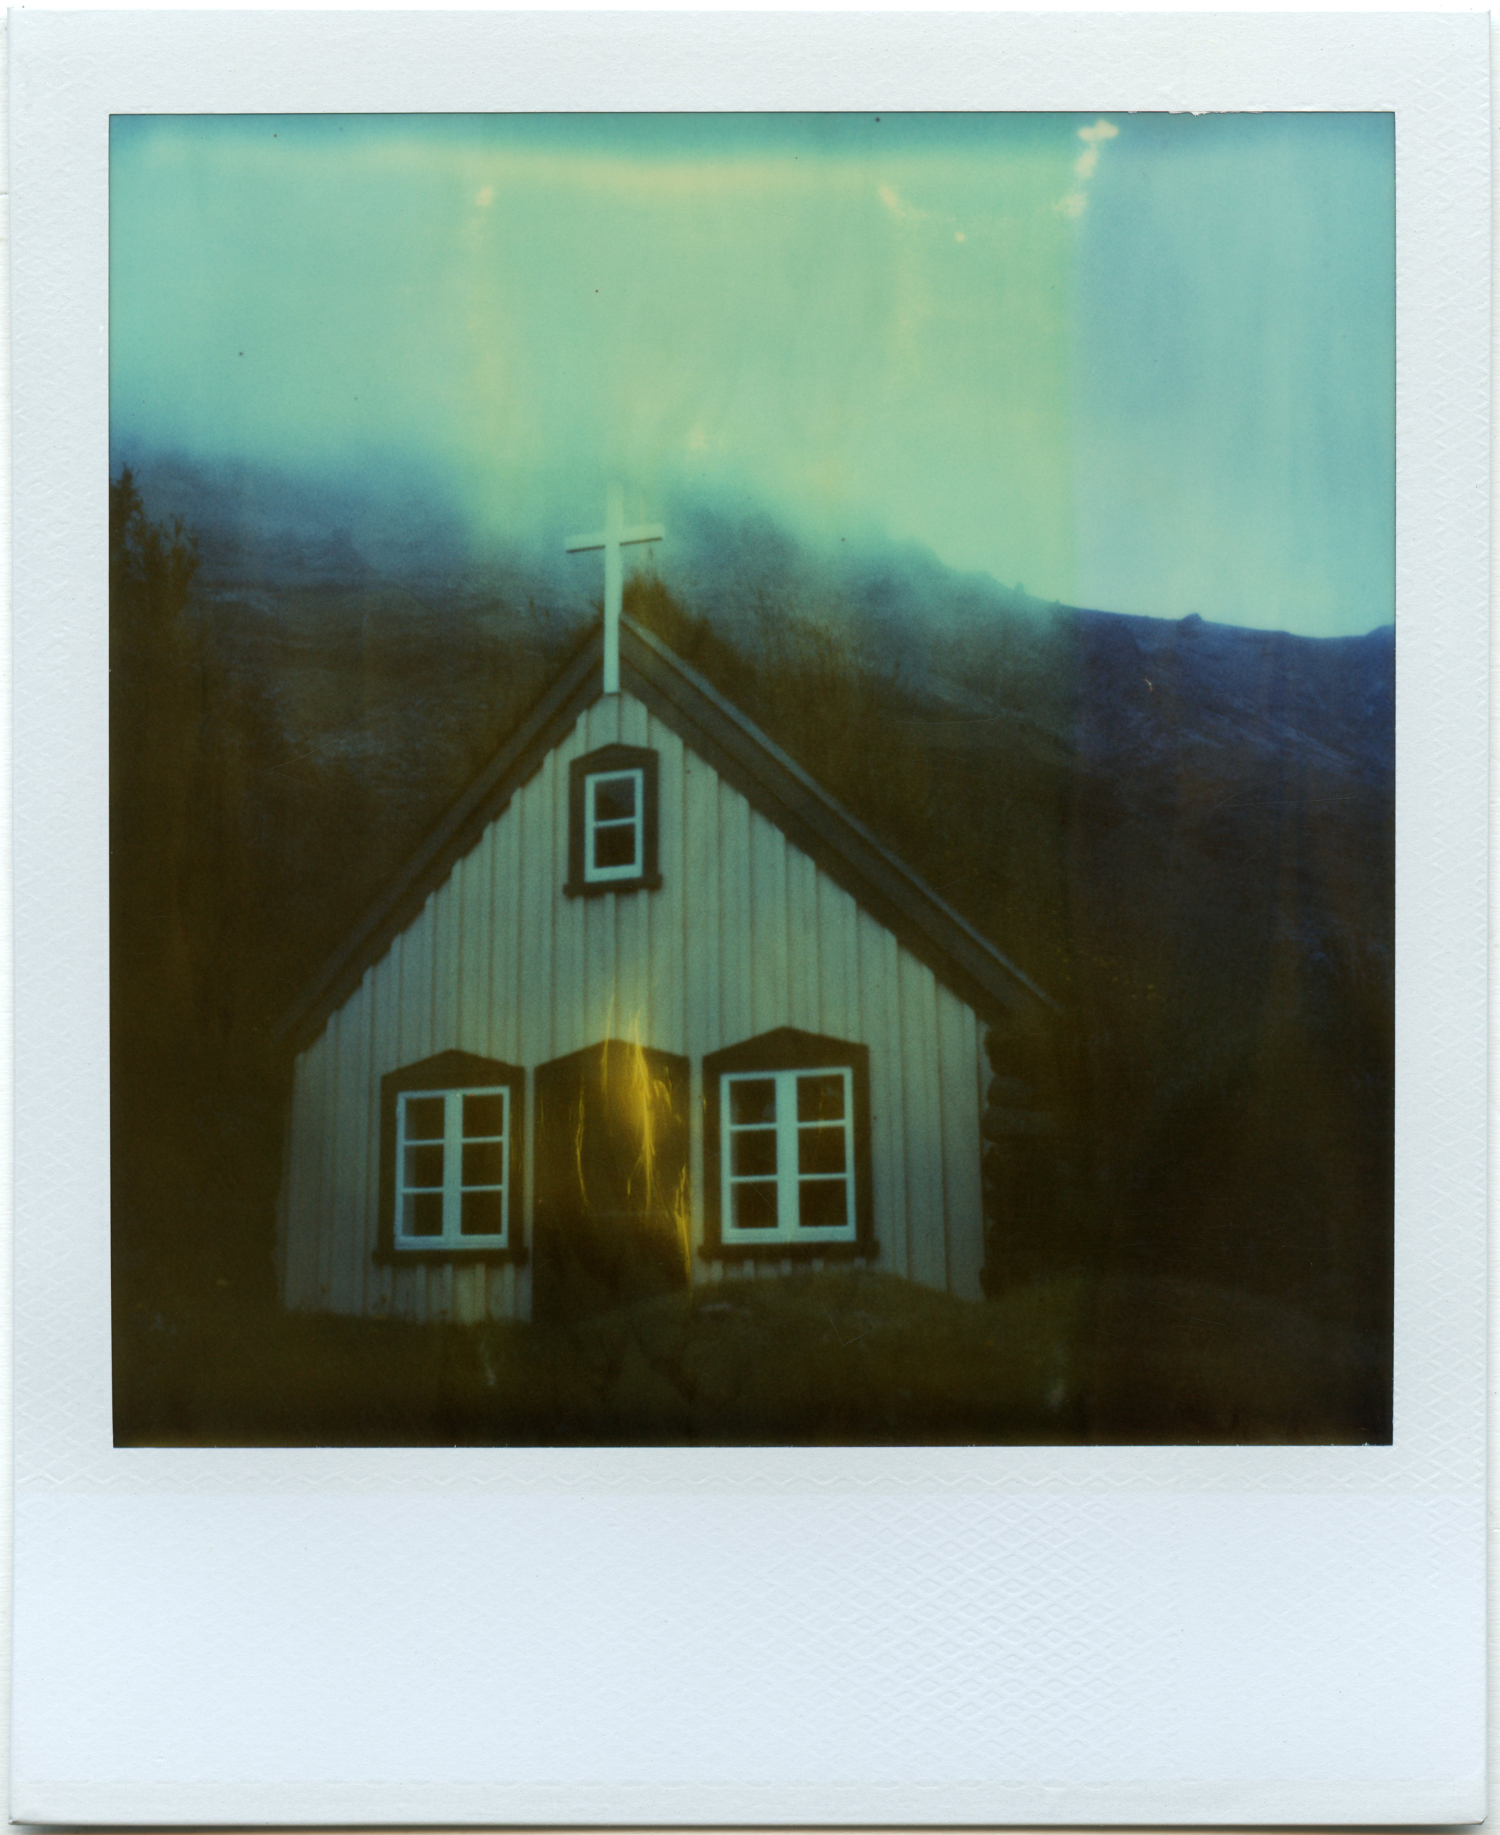 """Solitude"" - Expired Polaroid Time Zero Film - 2018"